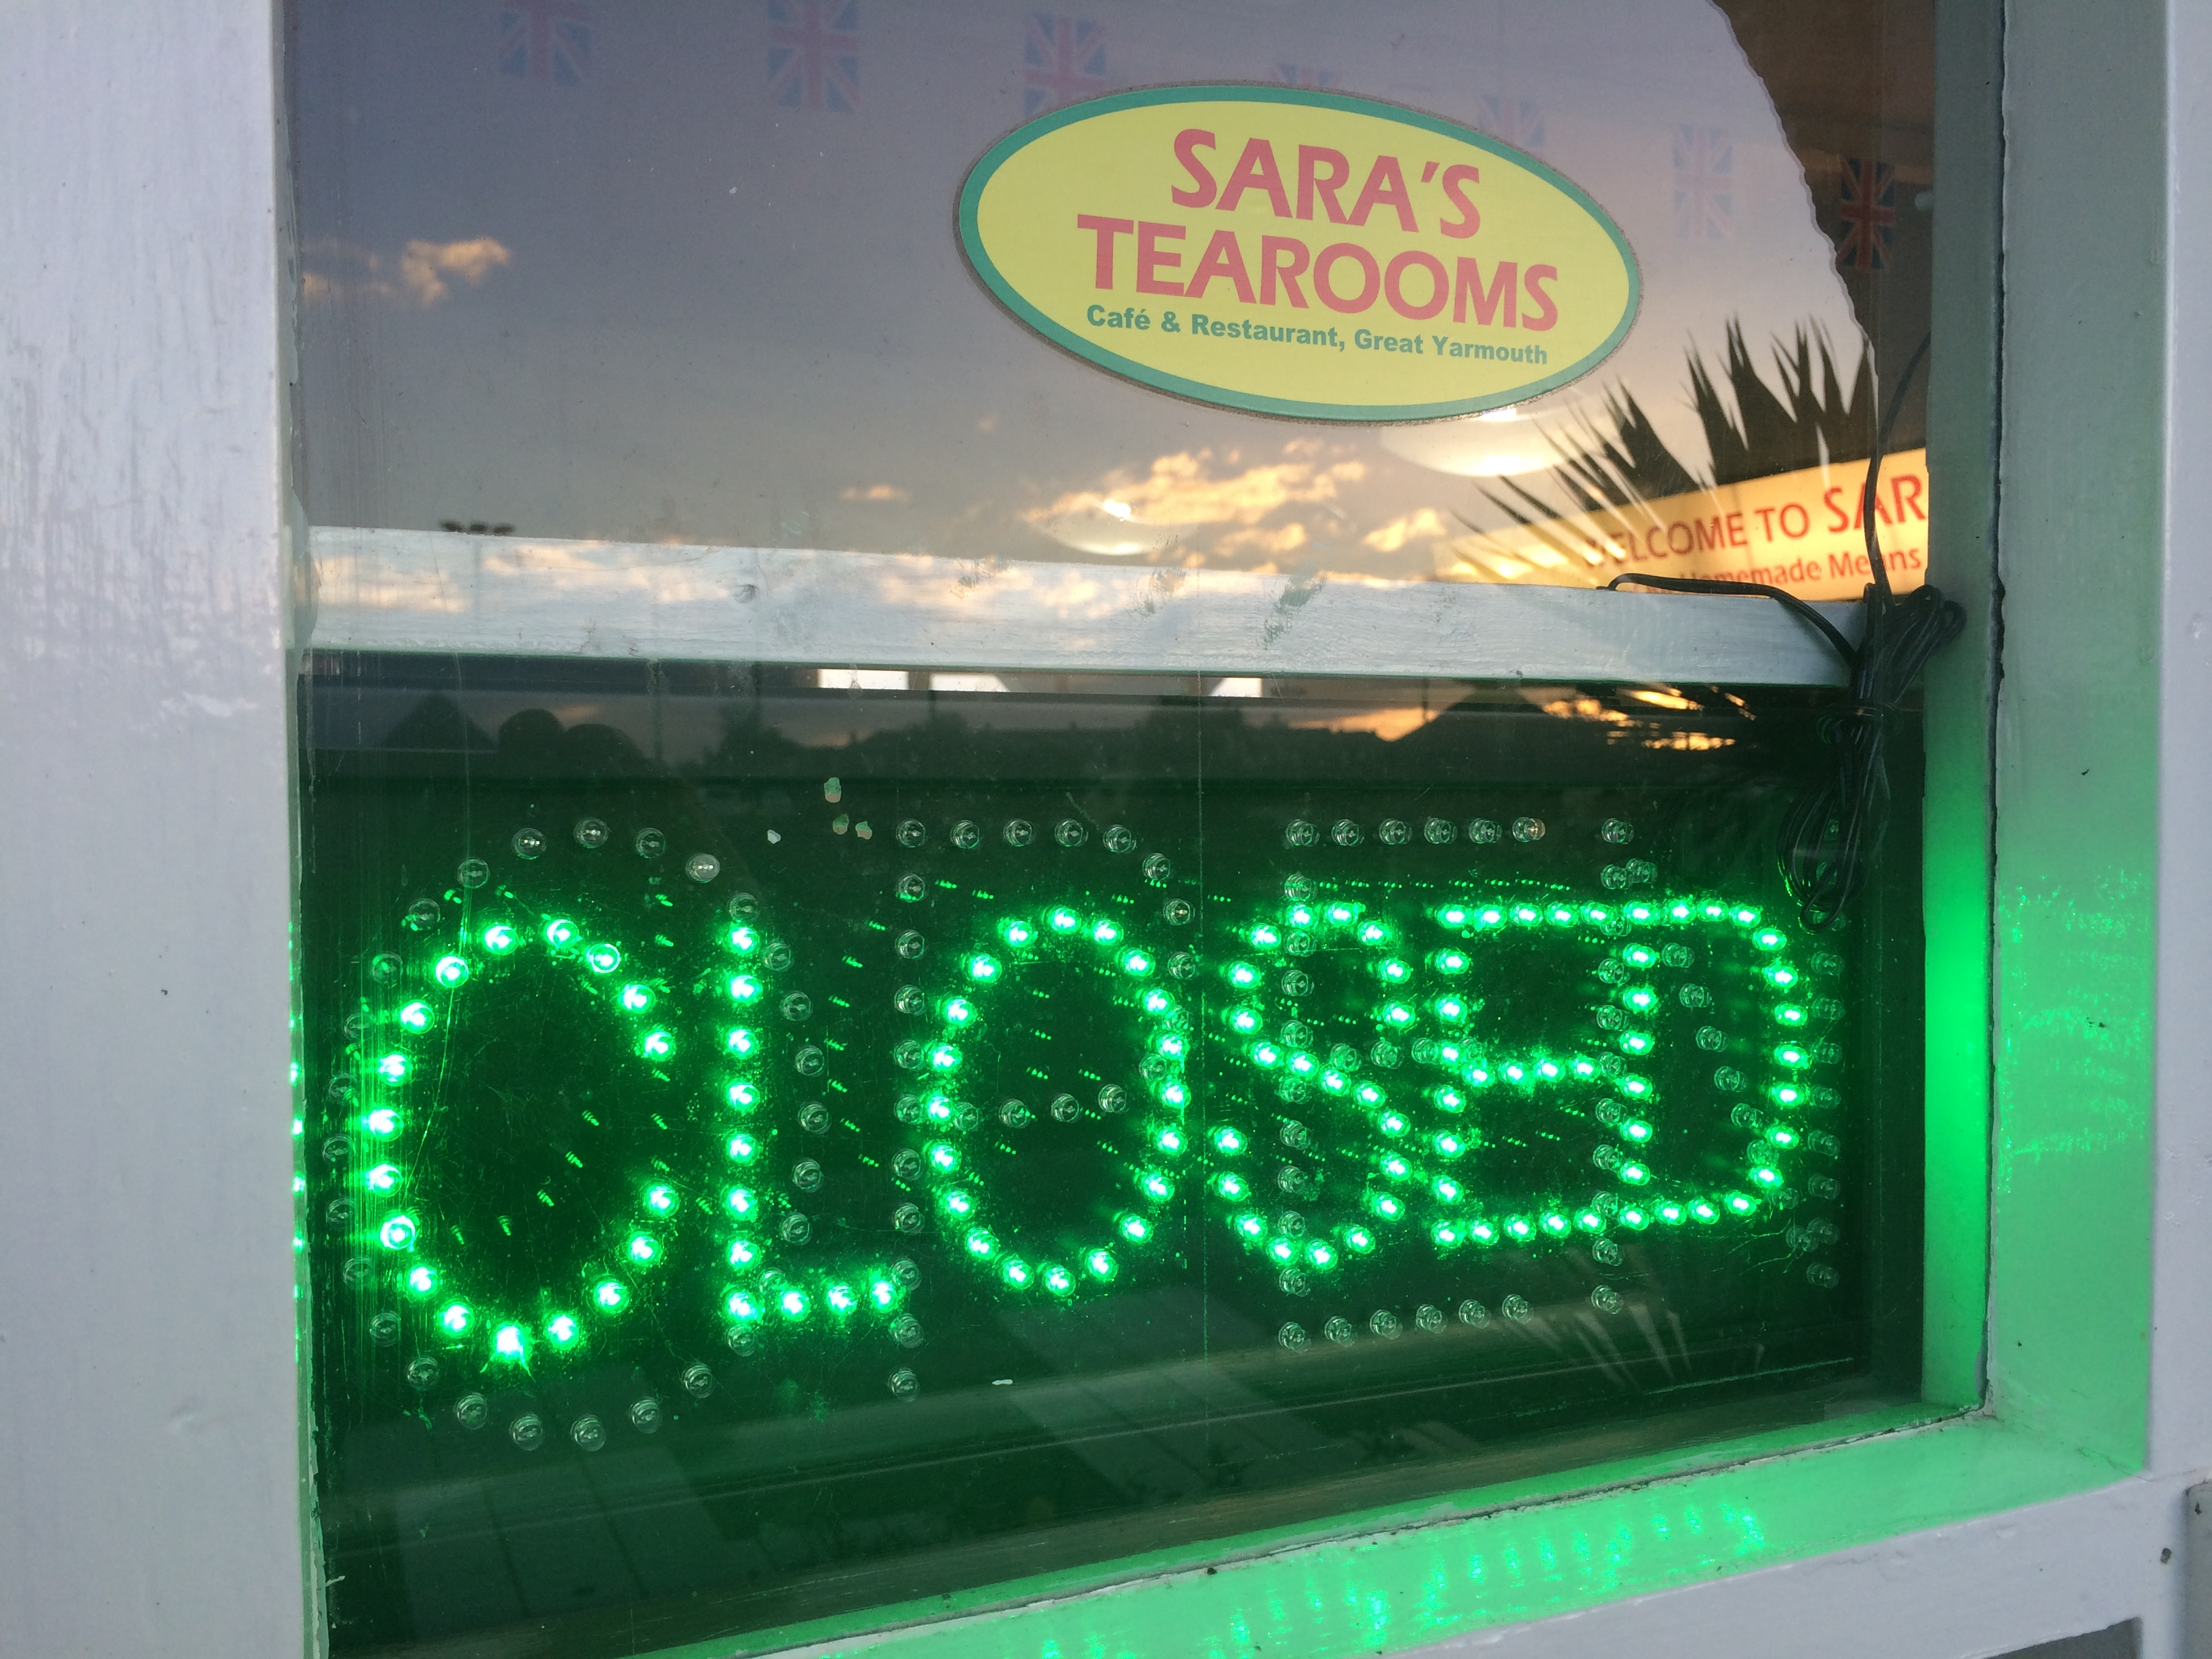 Sara's Tearooms has now Closed for the winter.